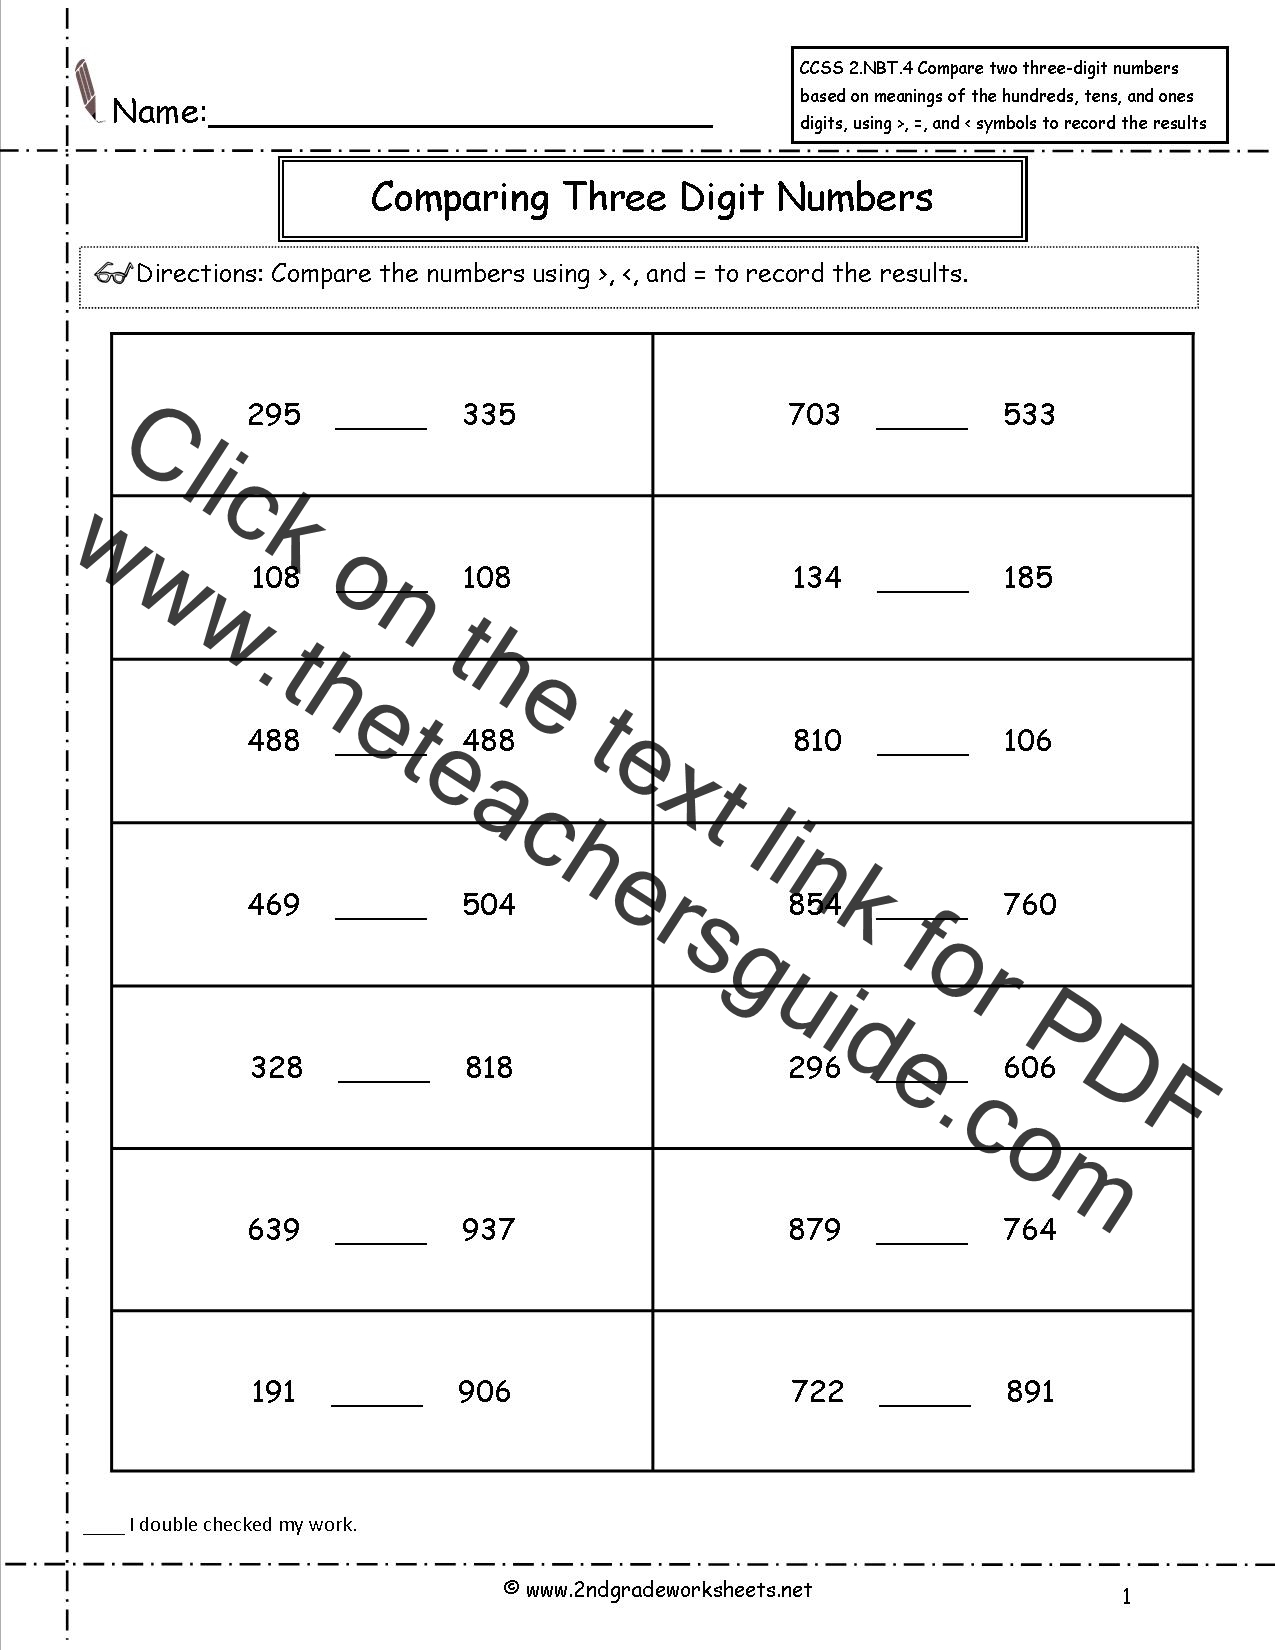 Worksheets Comparing Numbers Worksheets 2nd Grade ccss 2 nbt 4 worksheets comparing three digit numbers compare 3 5 6 7 8 9 10